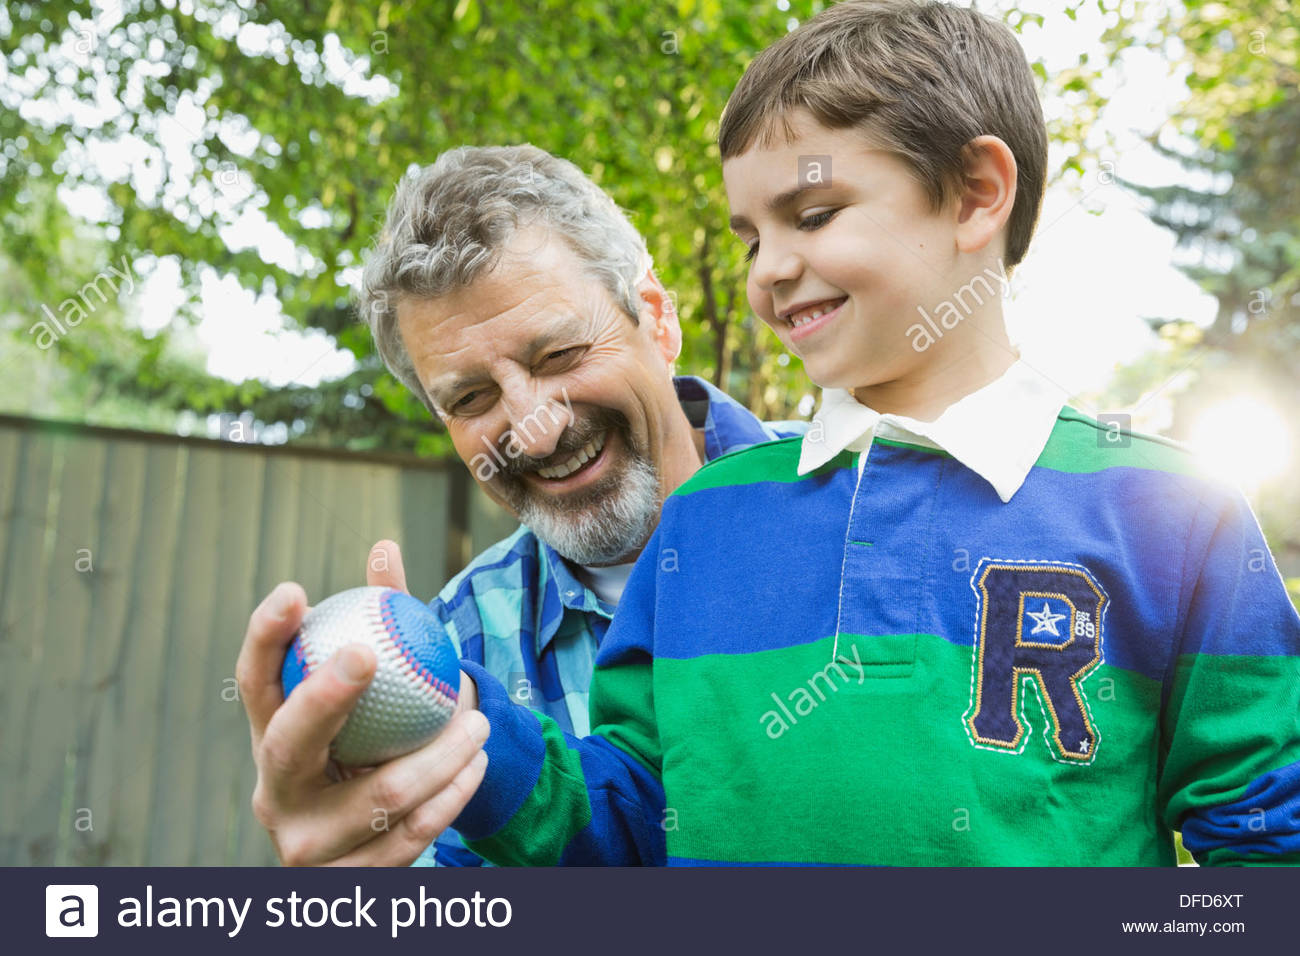 Grandfather teaching grandson how to throw a baseball - Stock Image